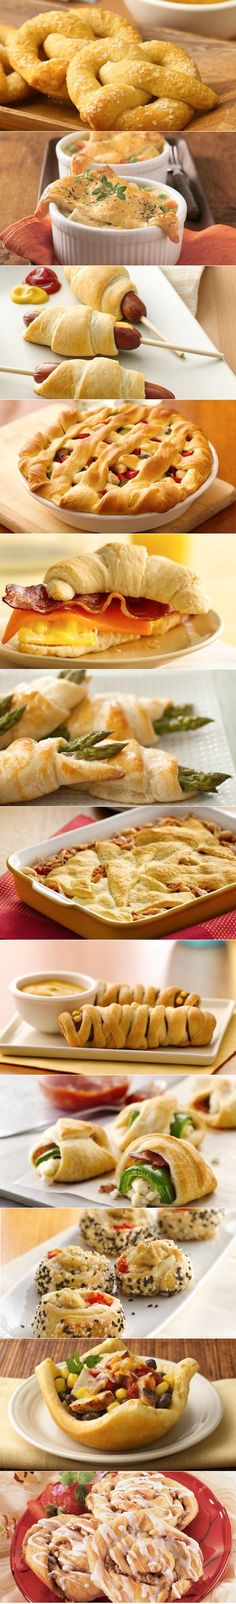 a list of yummy Crescent Roll Recipes. I love crescent rolls! Think Food, I Love Food, Food For Thought, Good Food, Yummy Food, Tasty, Crescent Roll Recipes, Crescent Rolls, Crescent Dough